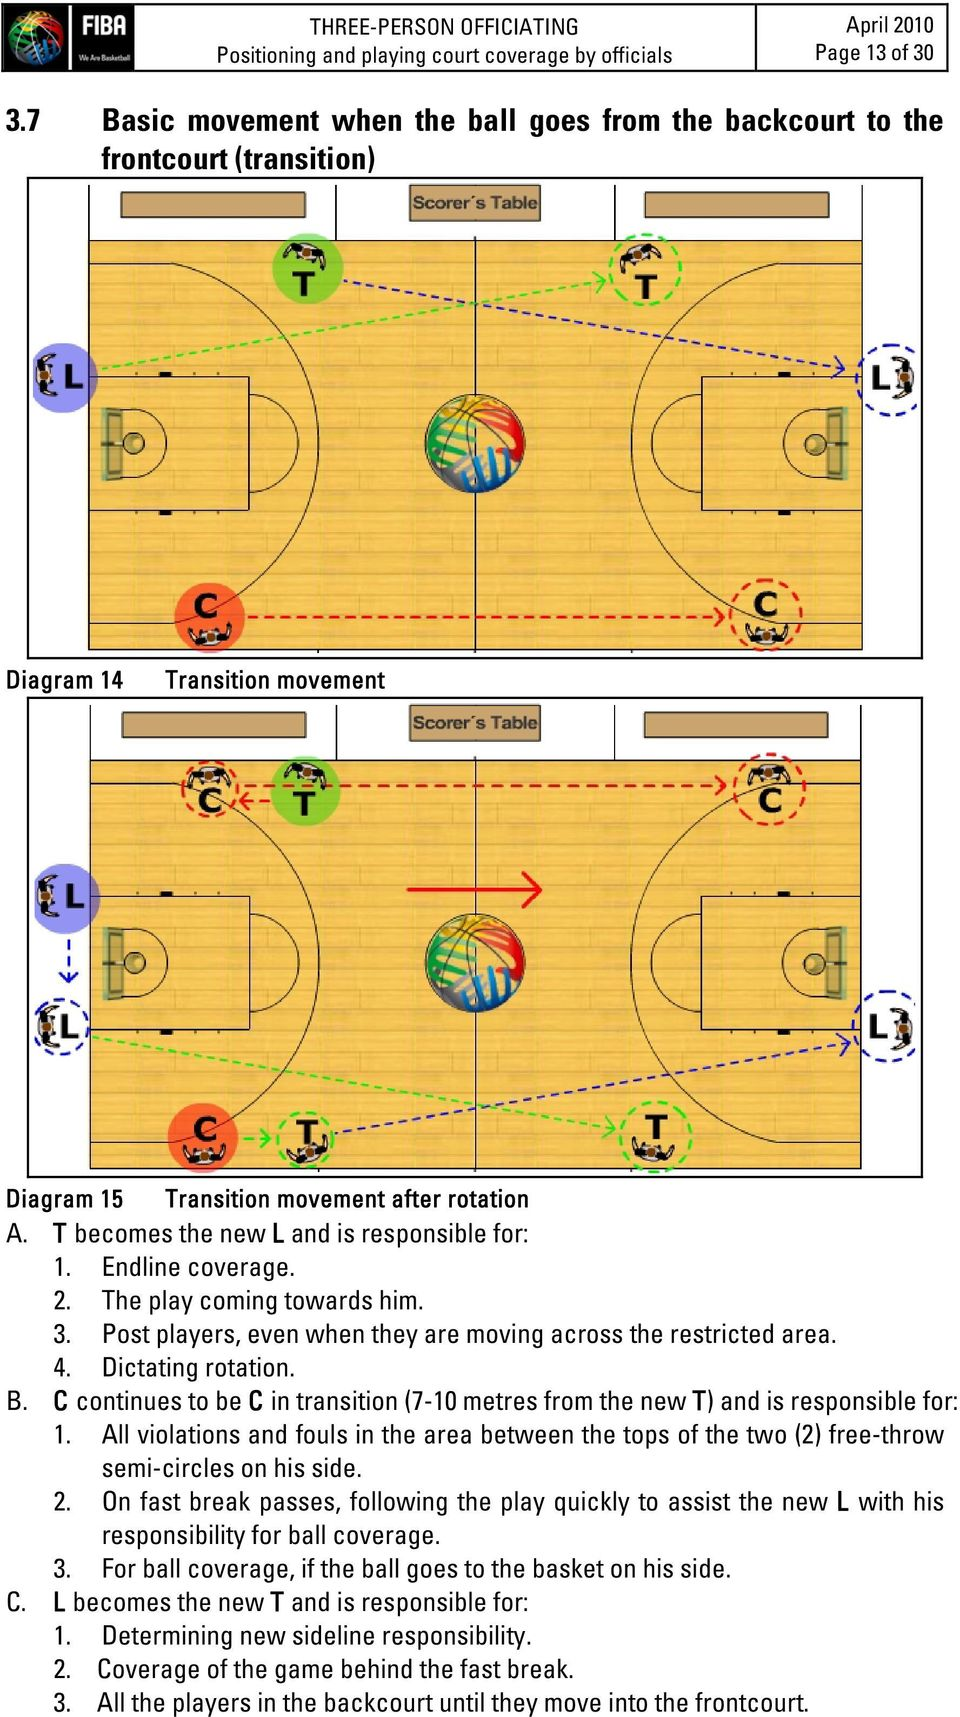 T becomes the new L and is responsible for: 1. Endline coverage. 2. The play coming towards him. 3. Post players, even when they are moving across the restricted area. 4. Dictating rotation. B.